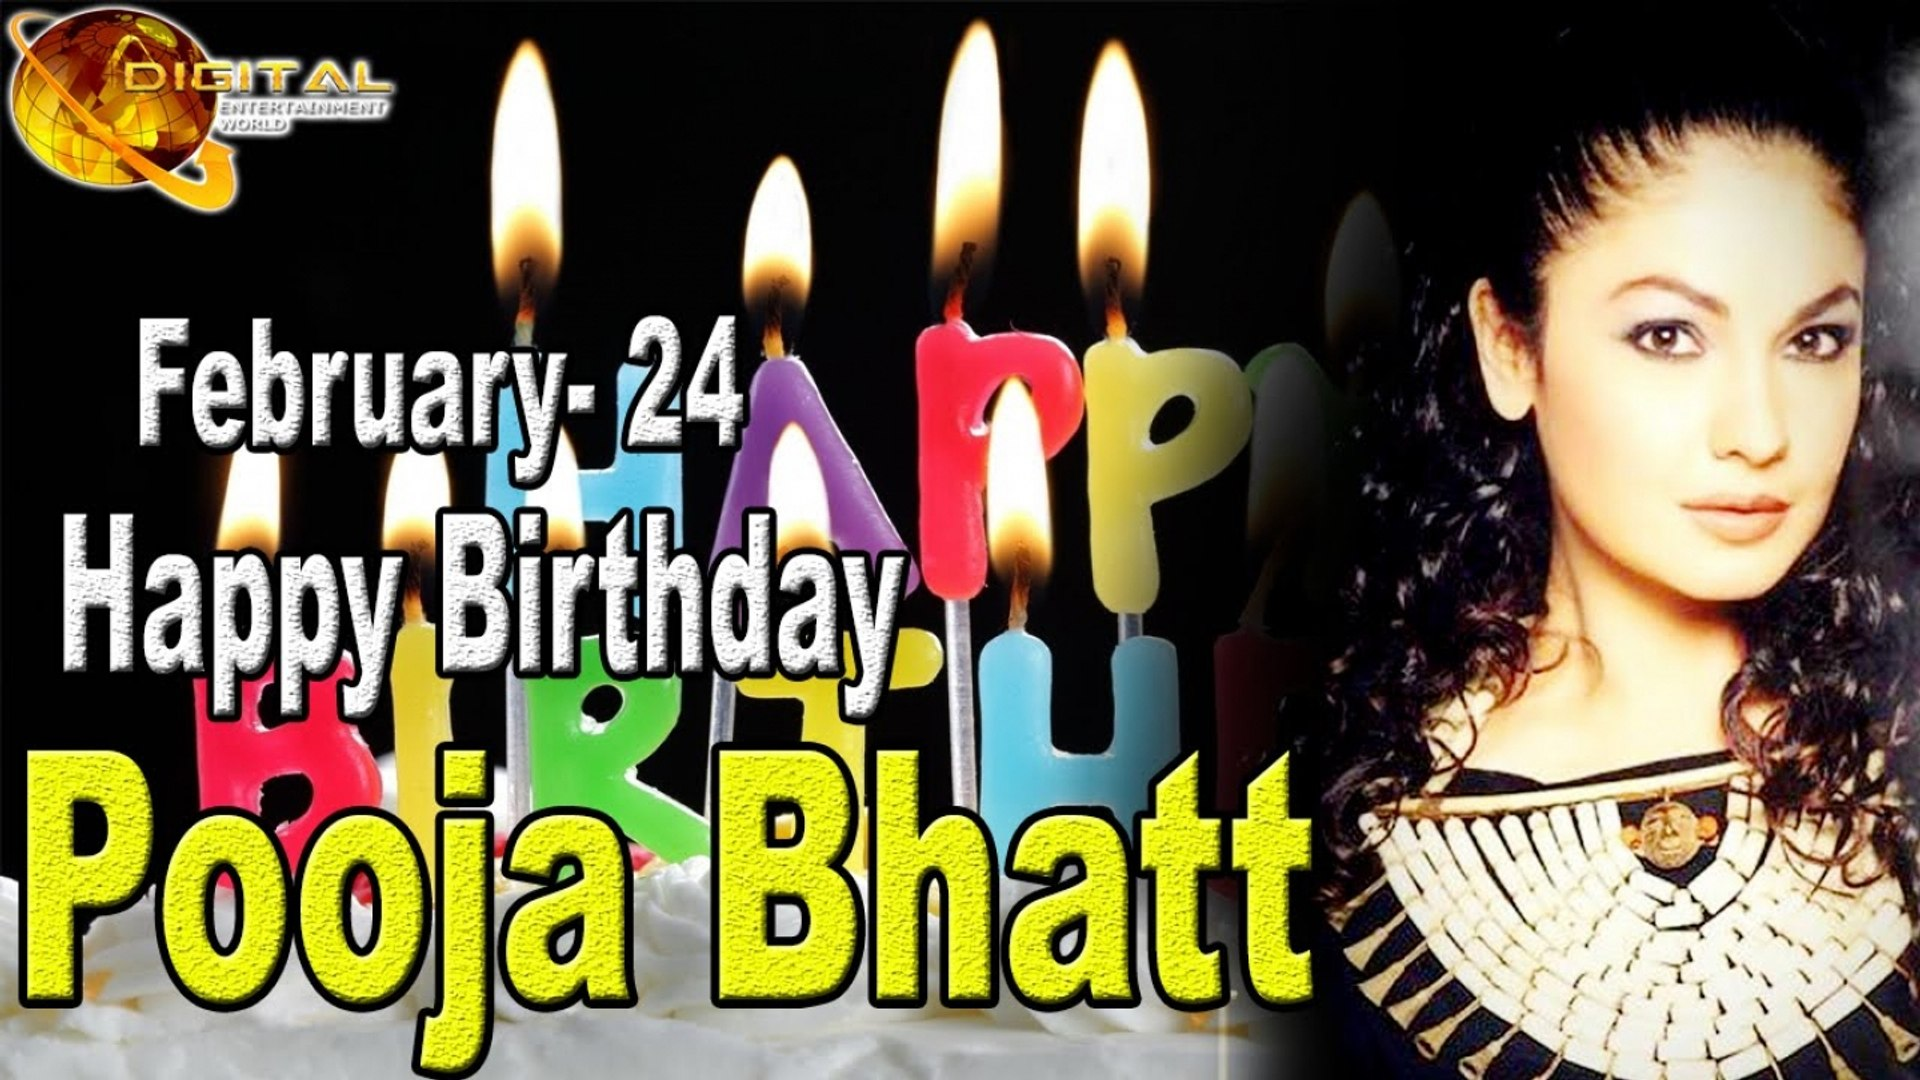 Happy Birthday Pooja Bhatt February 24